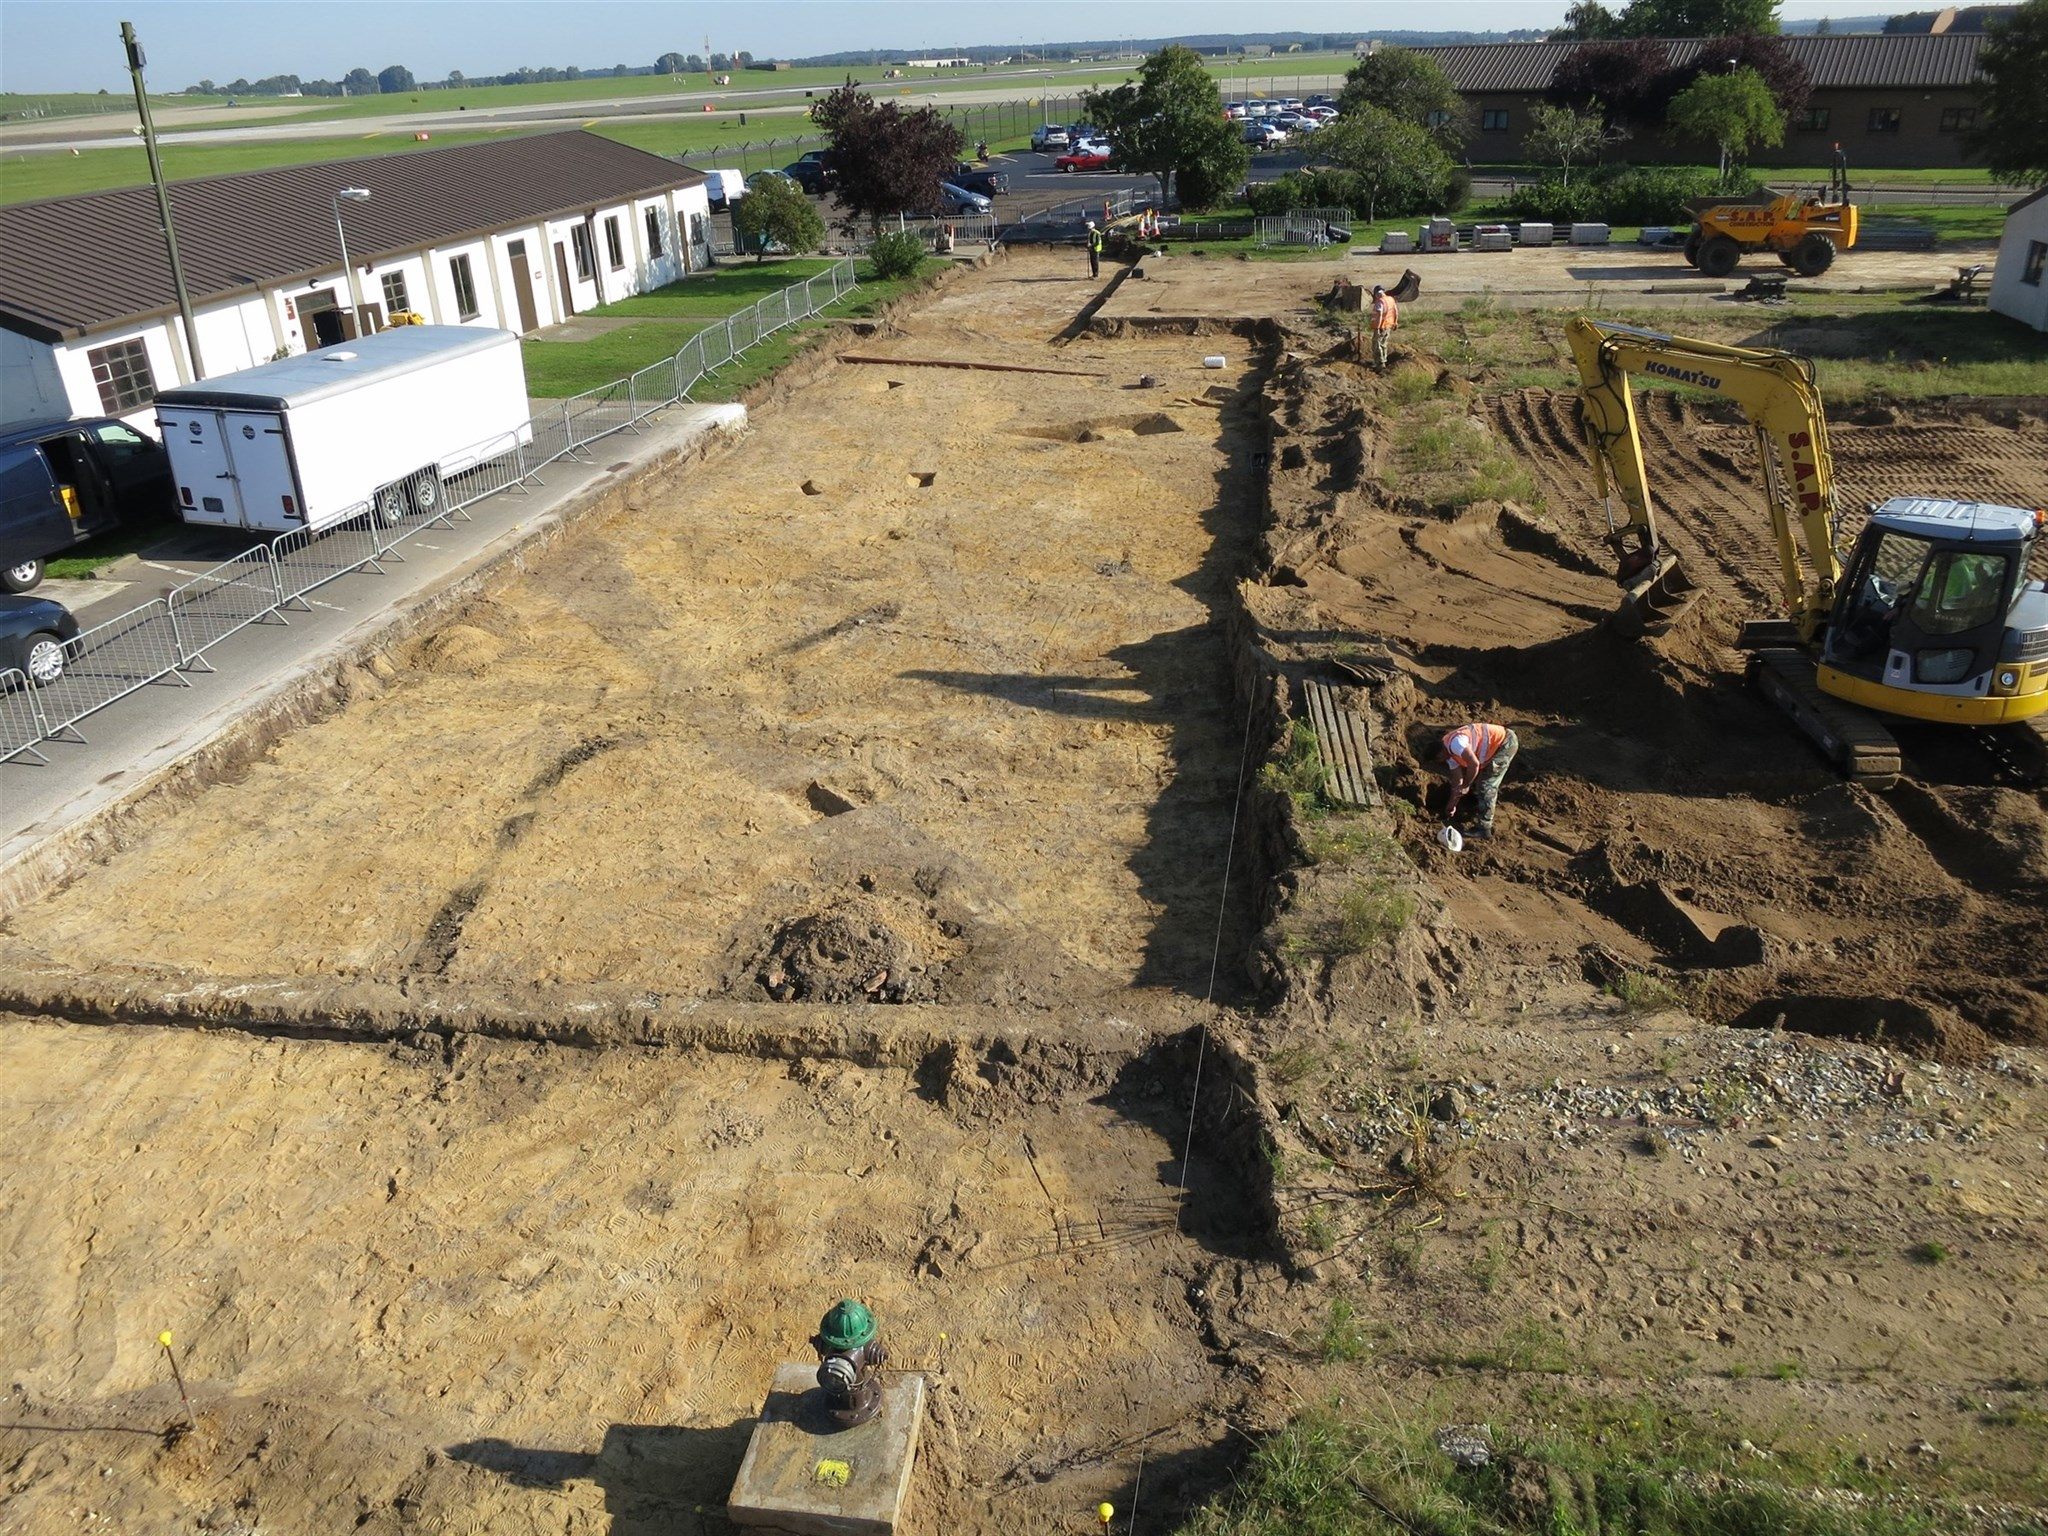 Latest excavation area at RAF Lakenheath